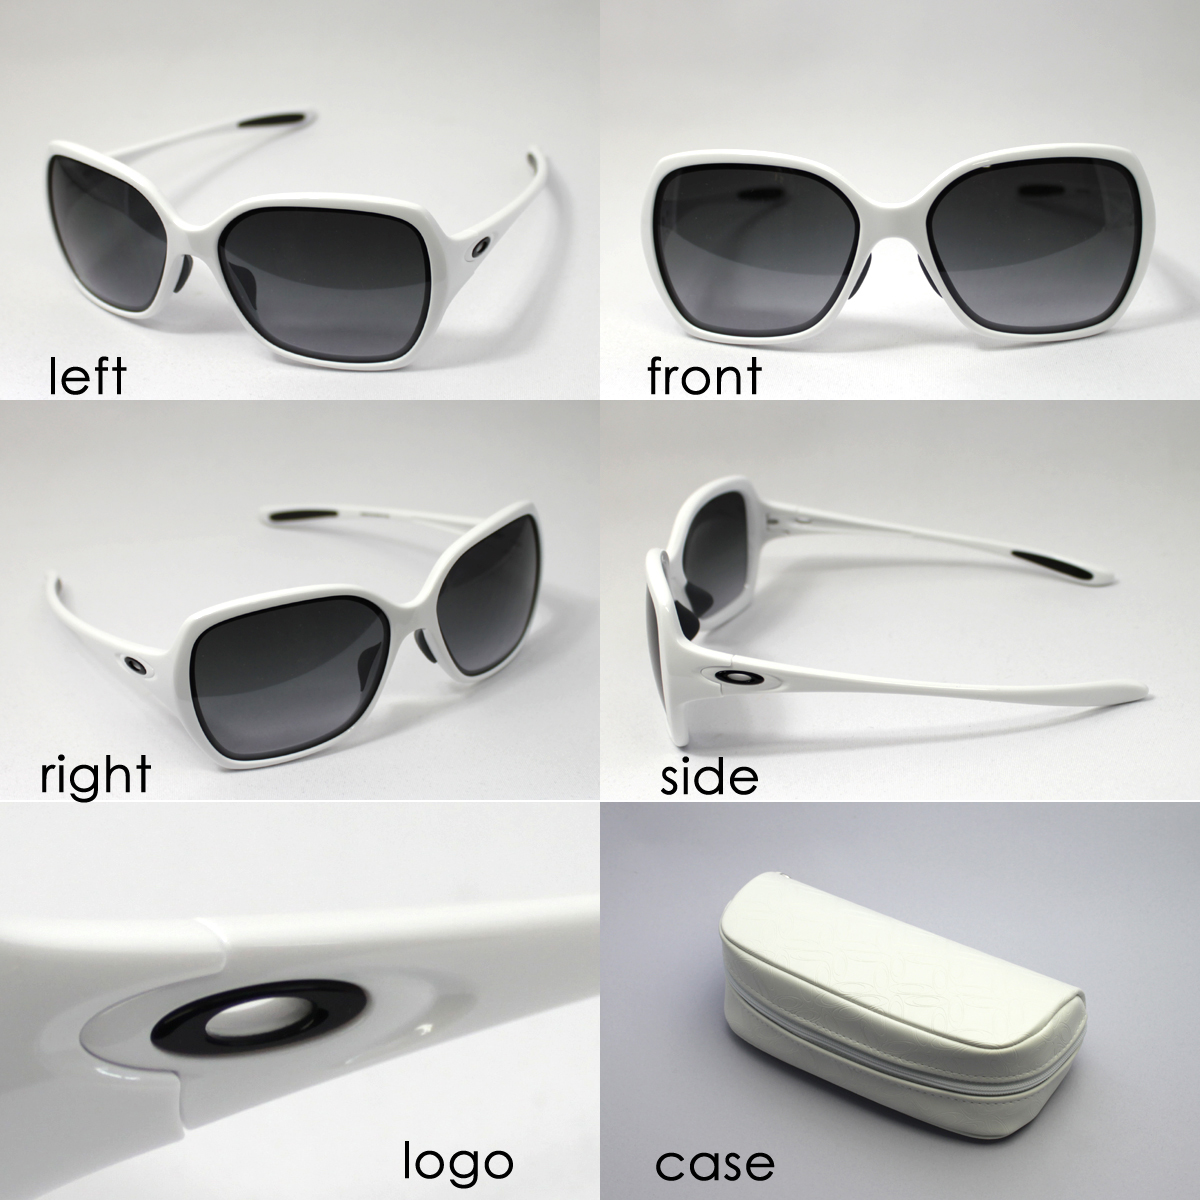 Oakley sunglasses asian fit - Oo9210 04 Oakley Sunglasses Over Time Asian Fit Overtime Oakley Asian Fit Active